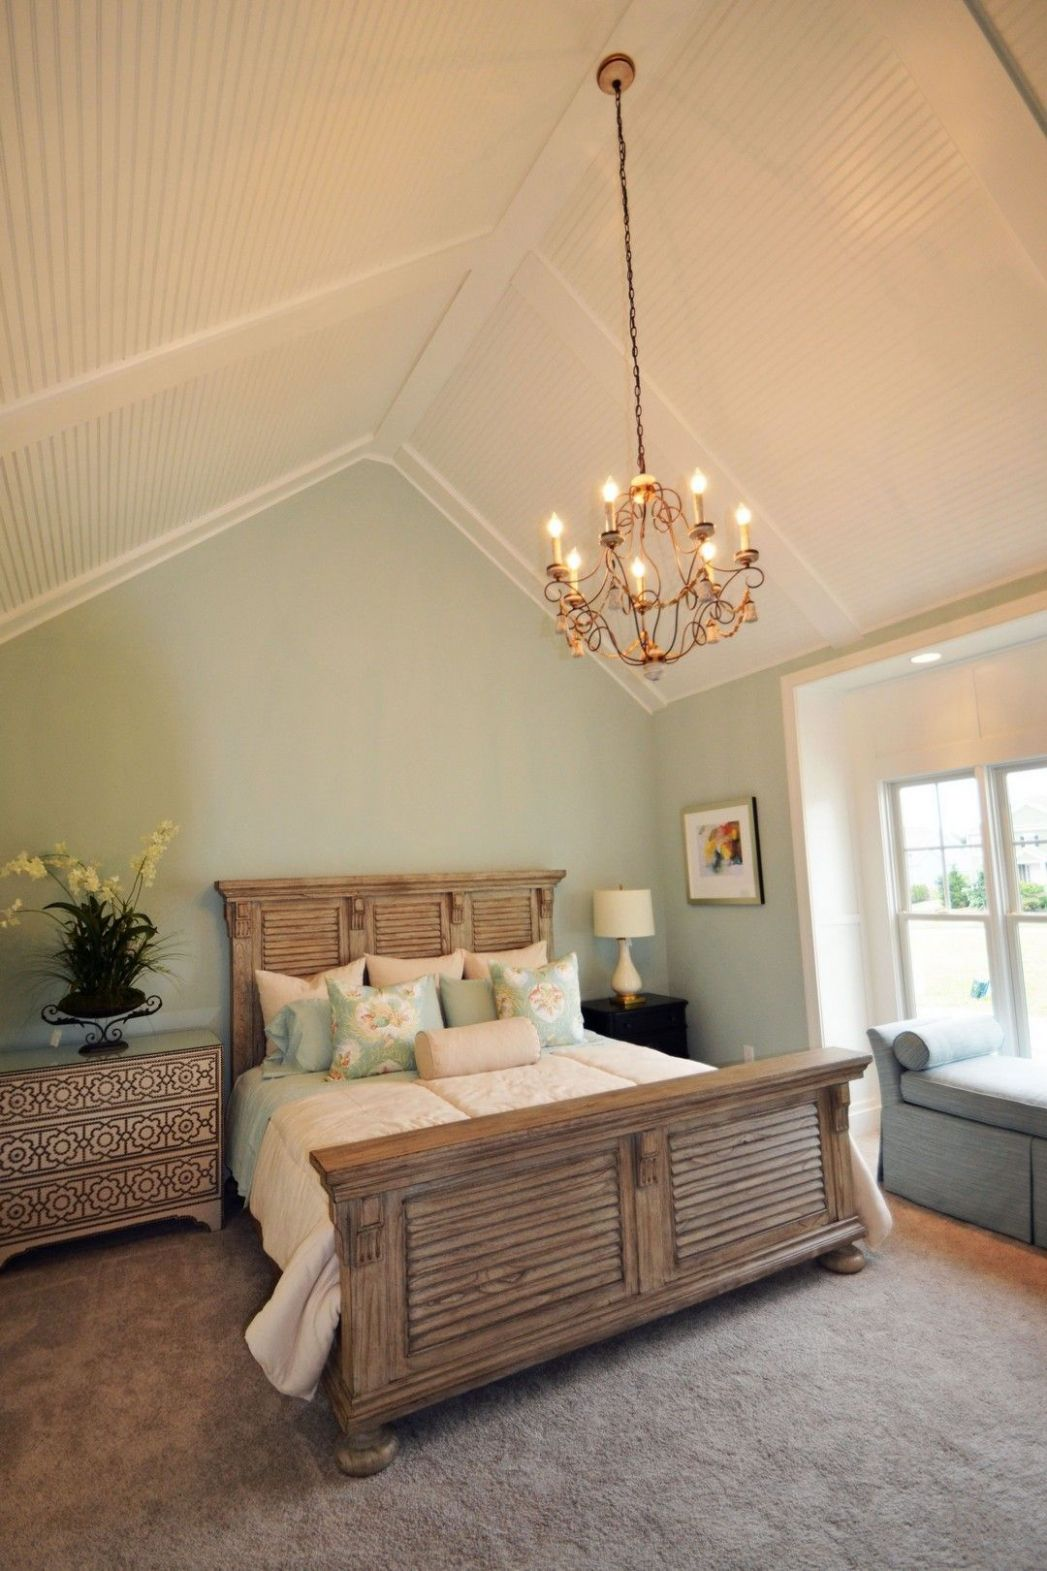 Aesthetic Master Bedroom with Lighting Fixture Ideas | Vaulted ...